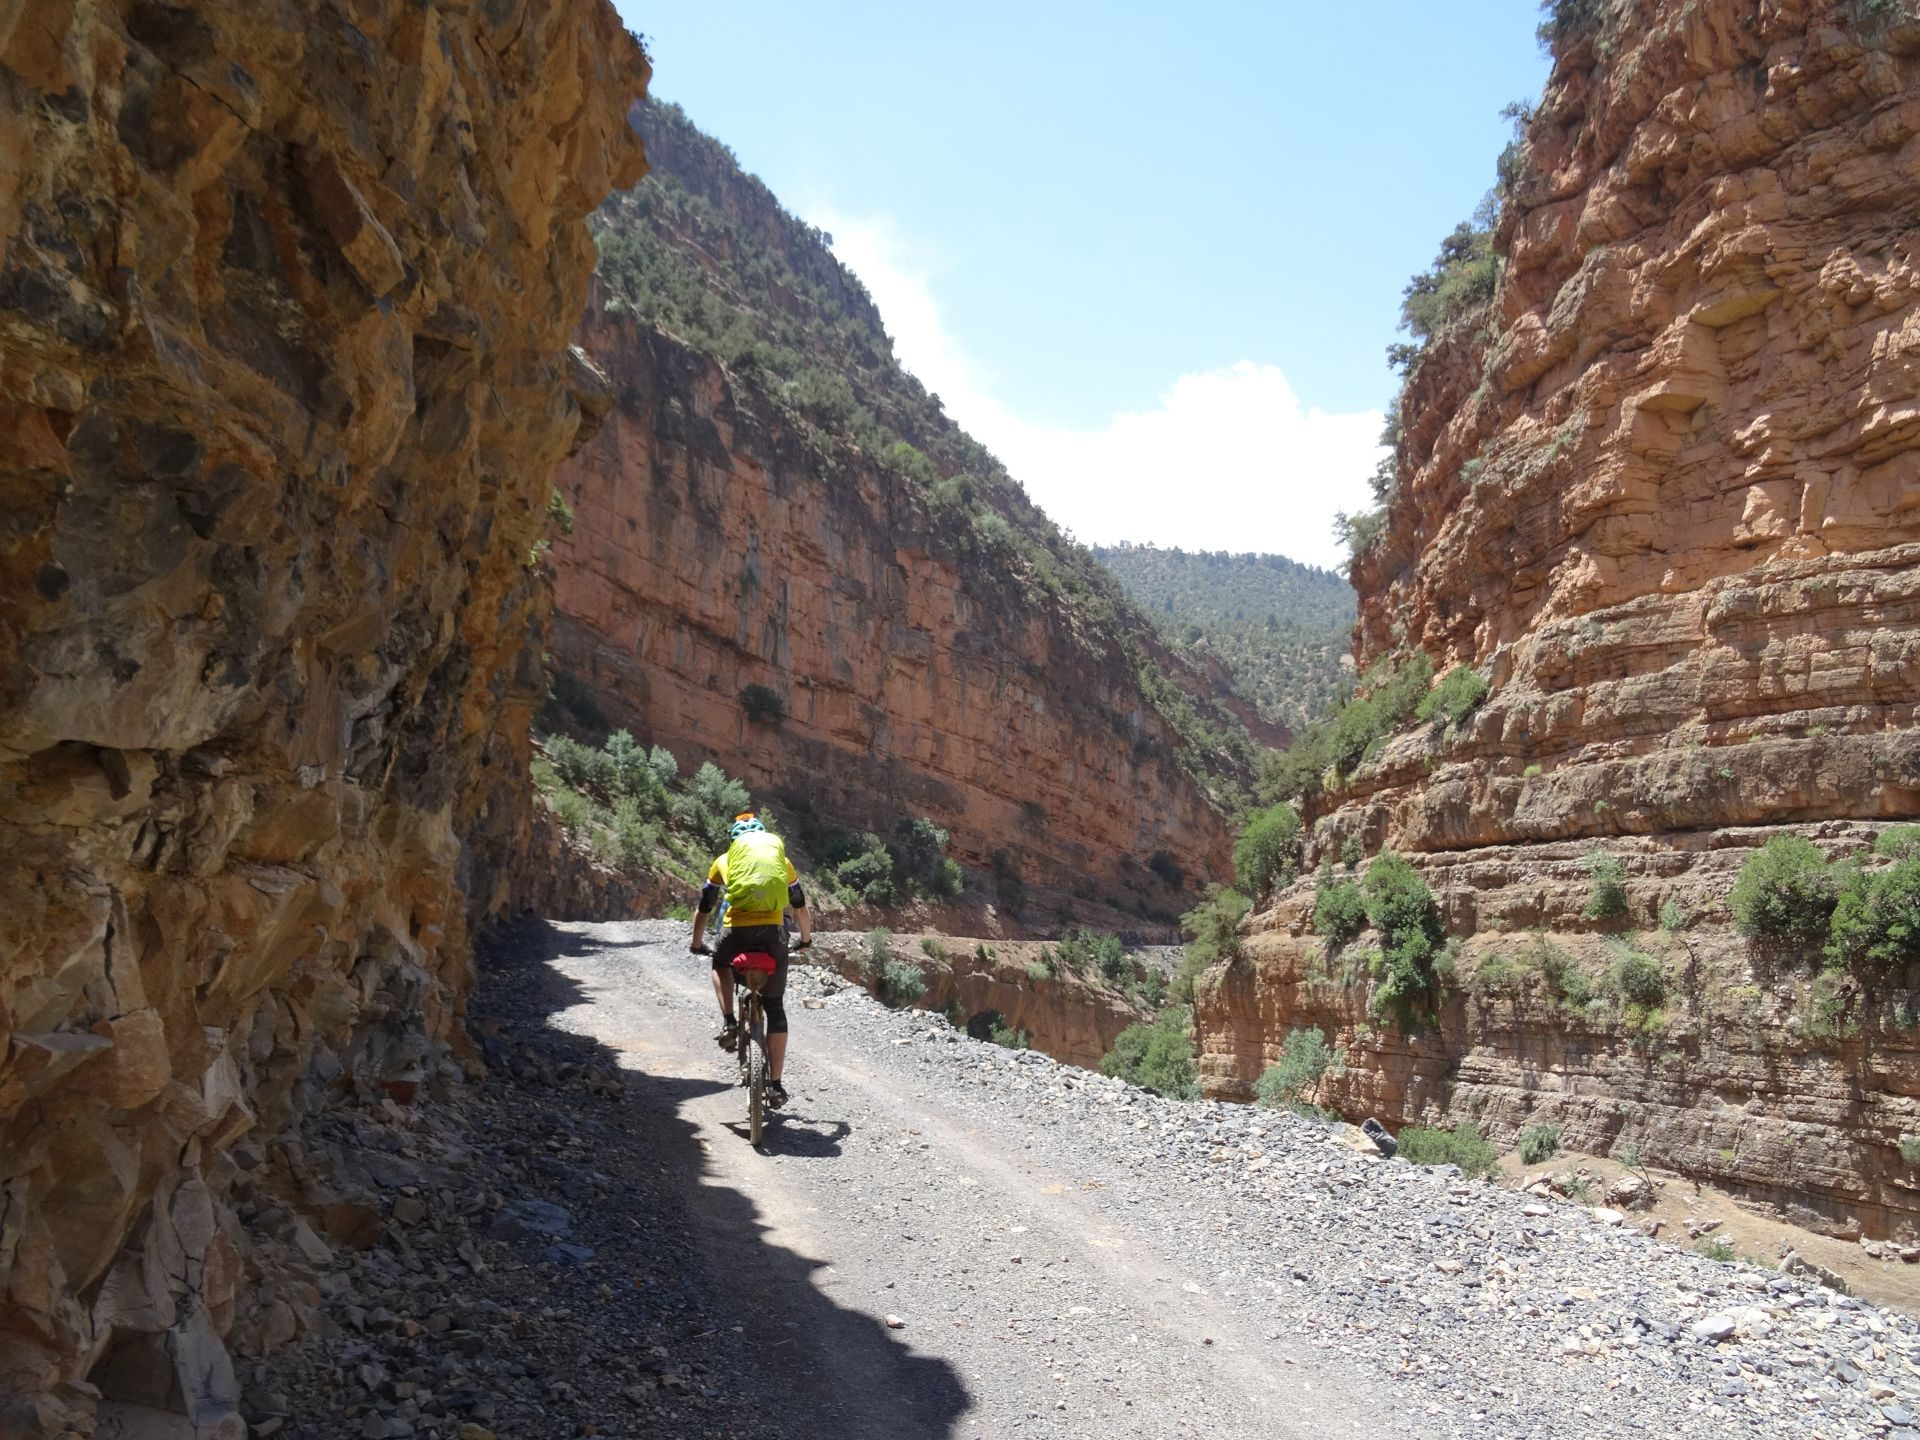 Day 2 - What a place! The Assif Melloul gorge continues. © Steve Woodward